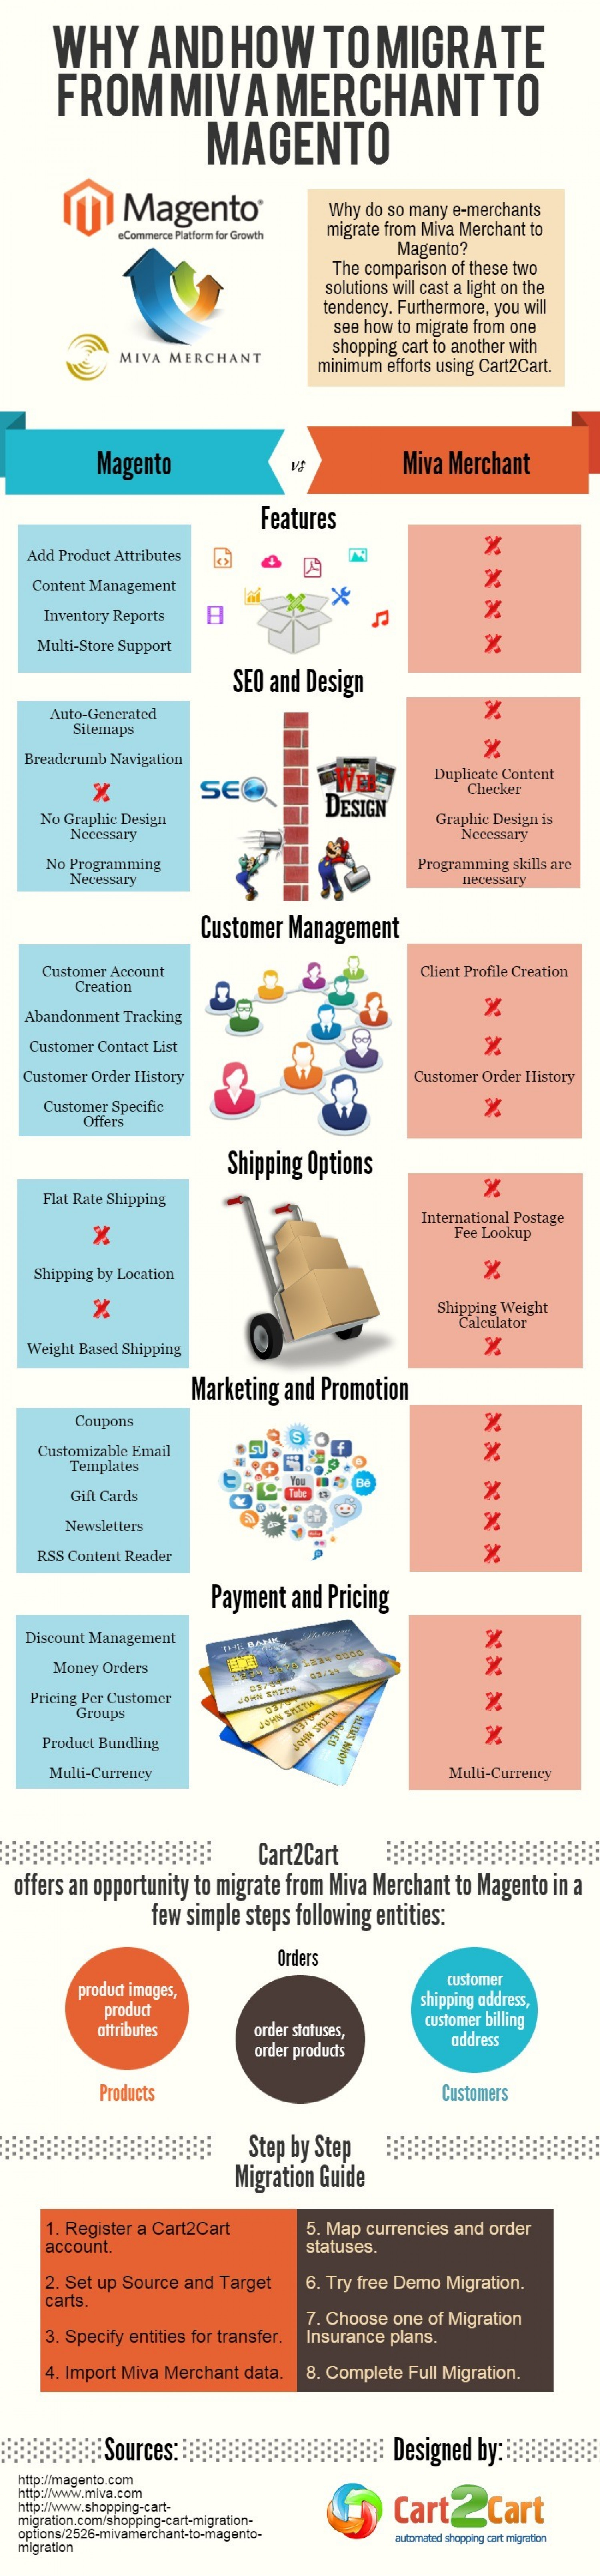 Why and How to Migrate from Miva Merchant to Magento Infographic